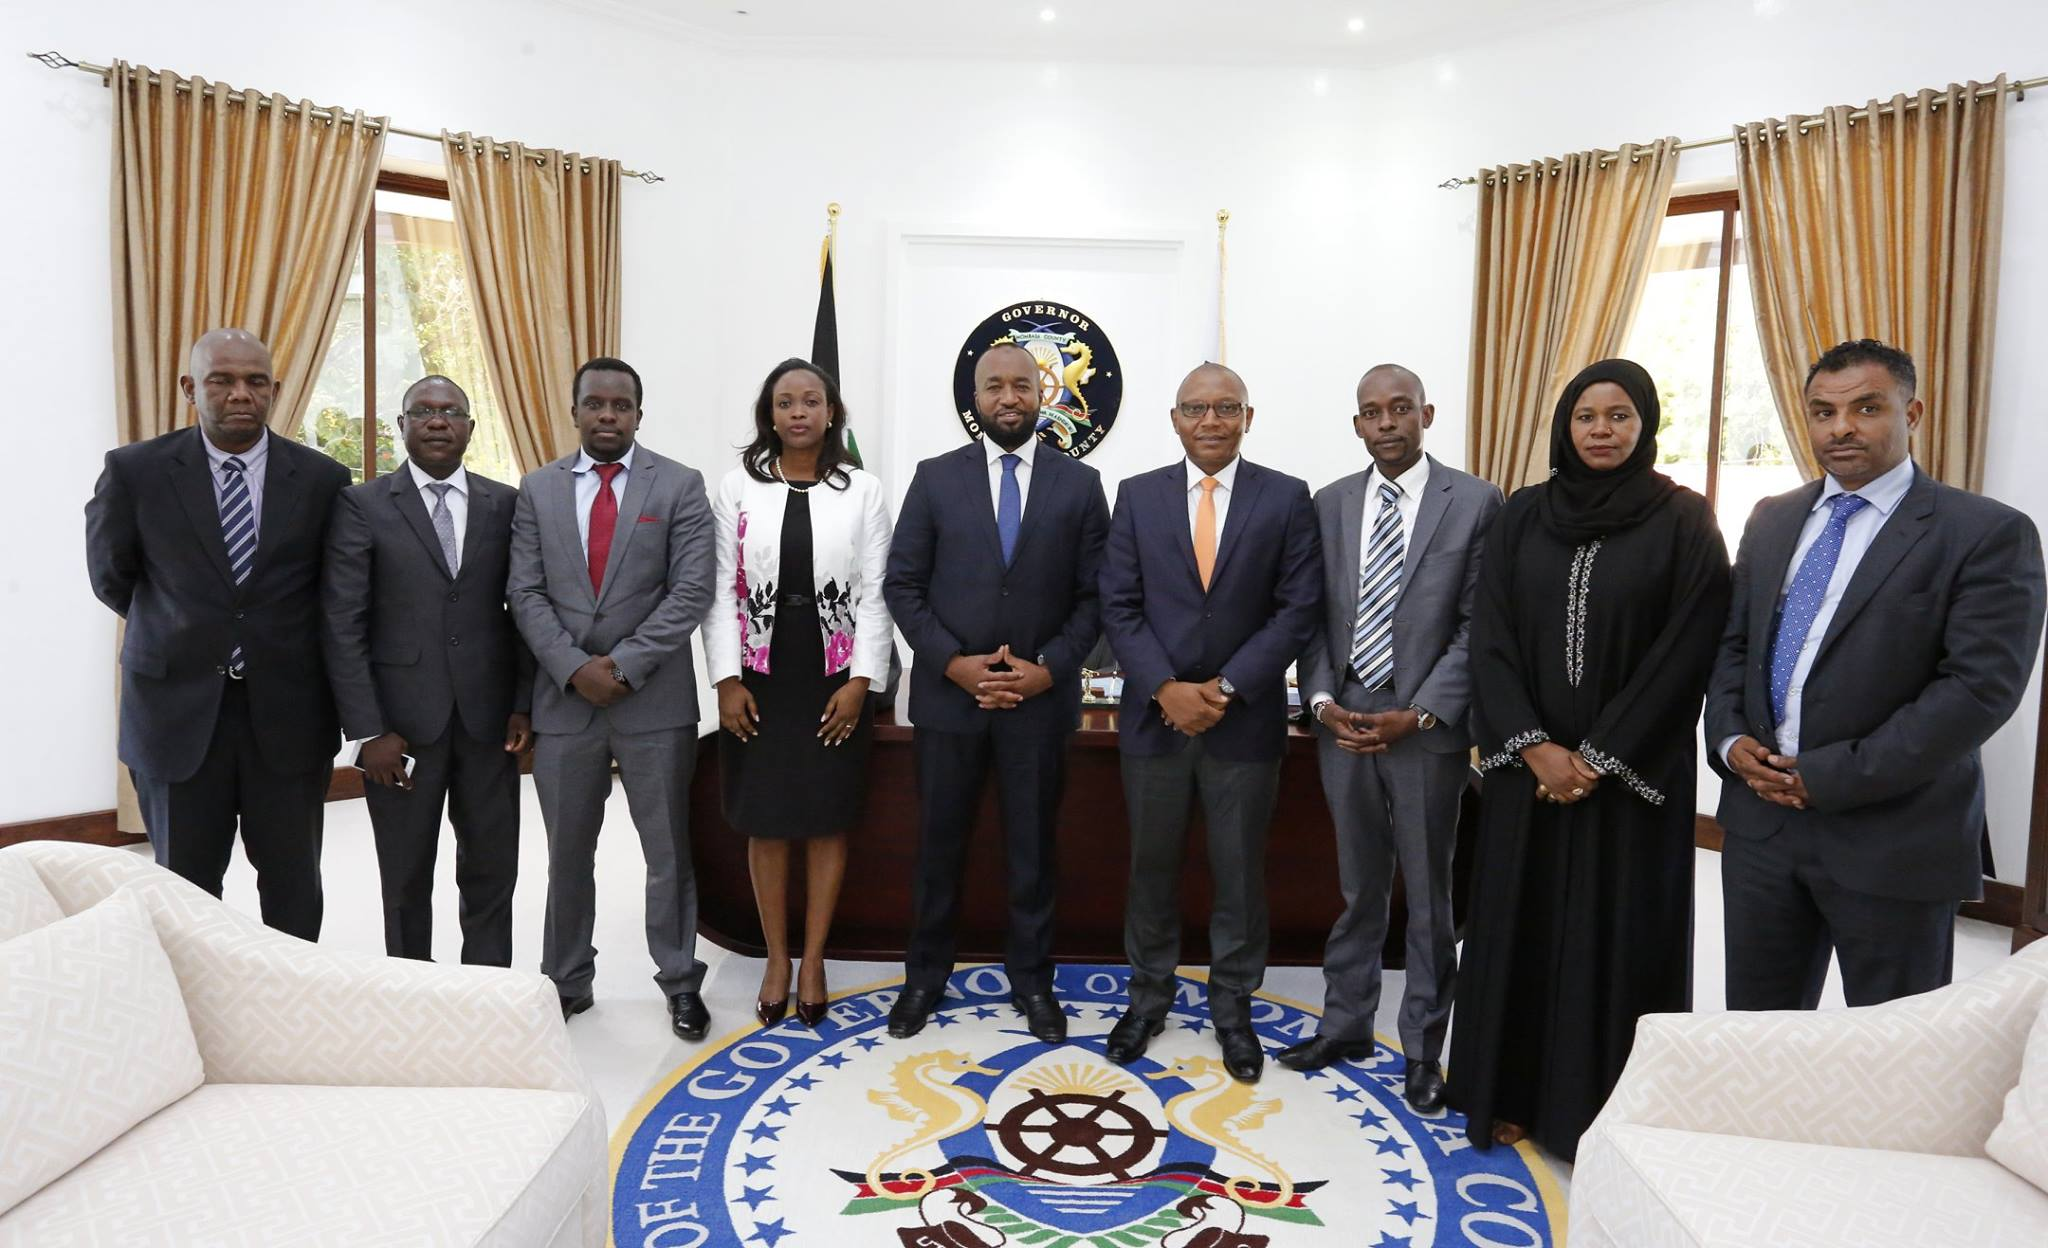 Mombasa Governor Hassan Joho with members of his cabinet